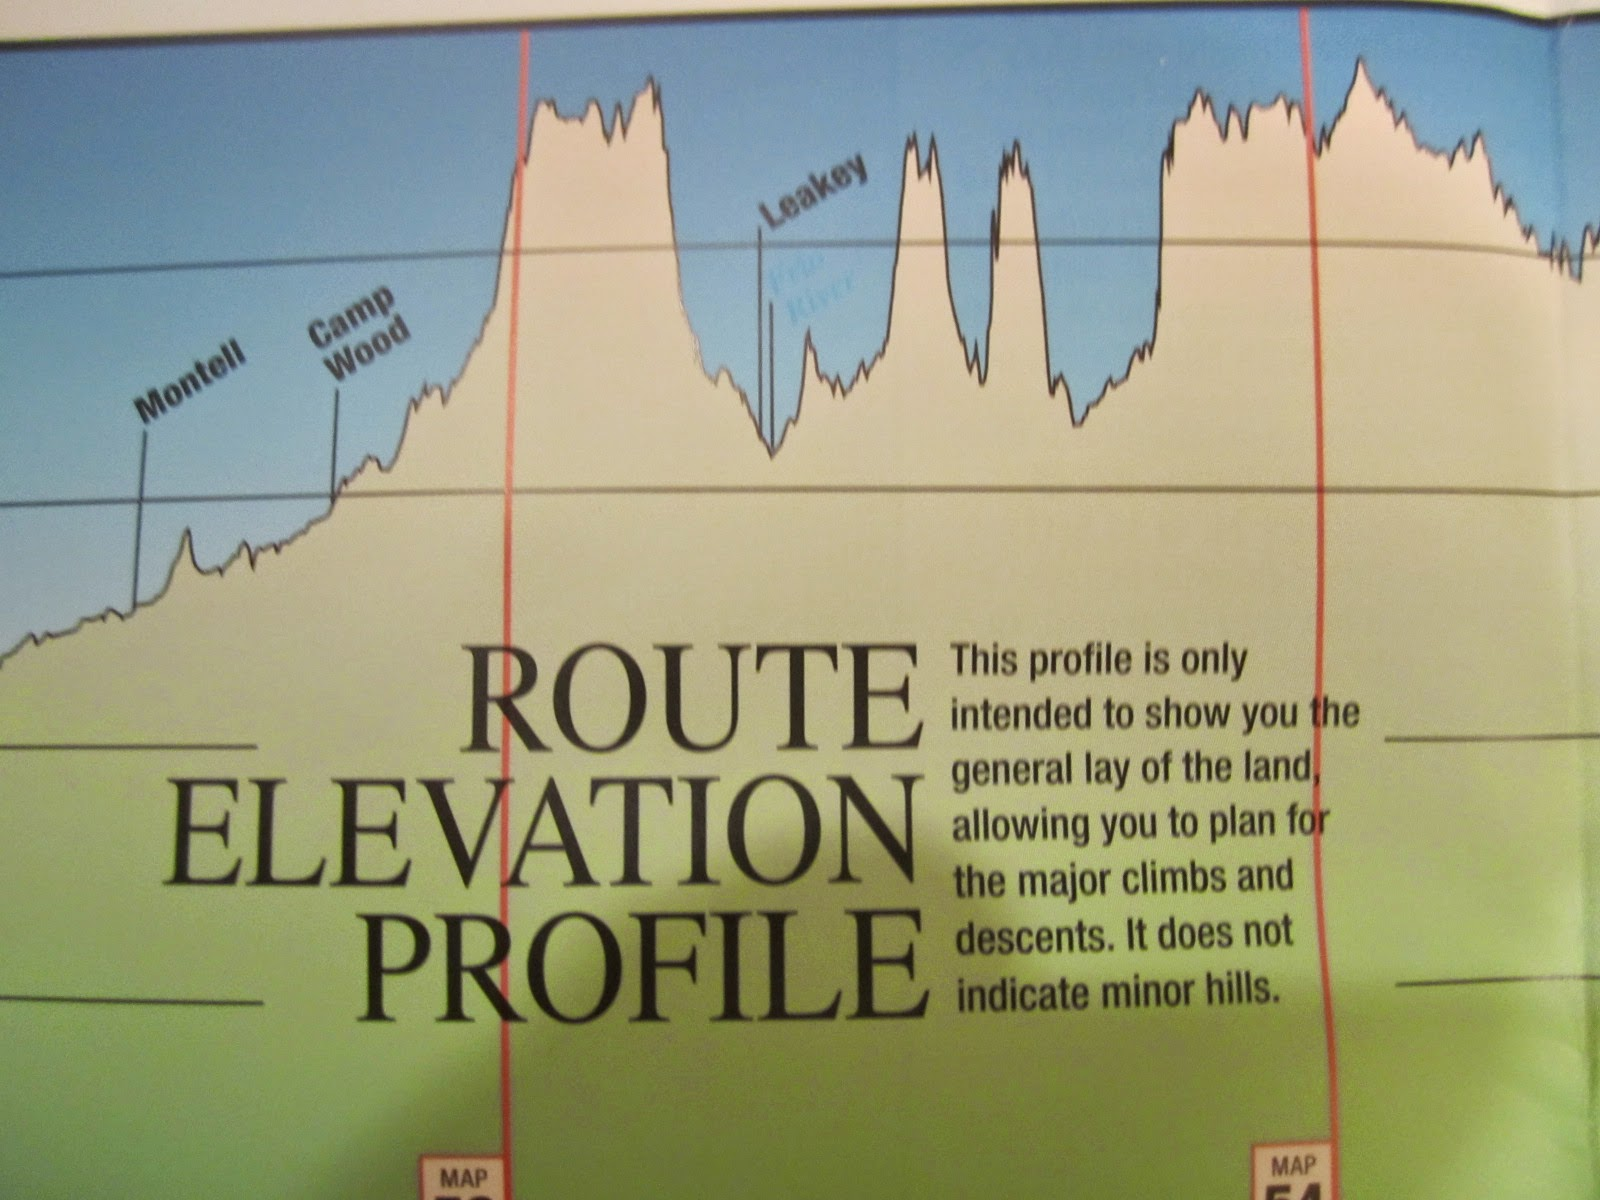 from here it branched off along minor roads into the texas hill country this is what the elevation profile looks like